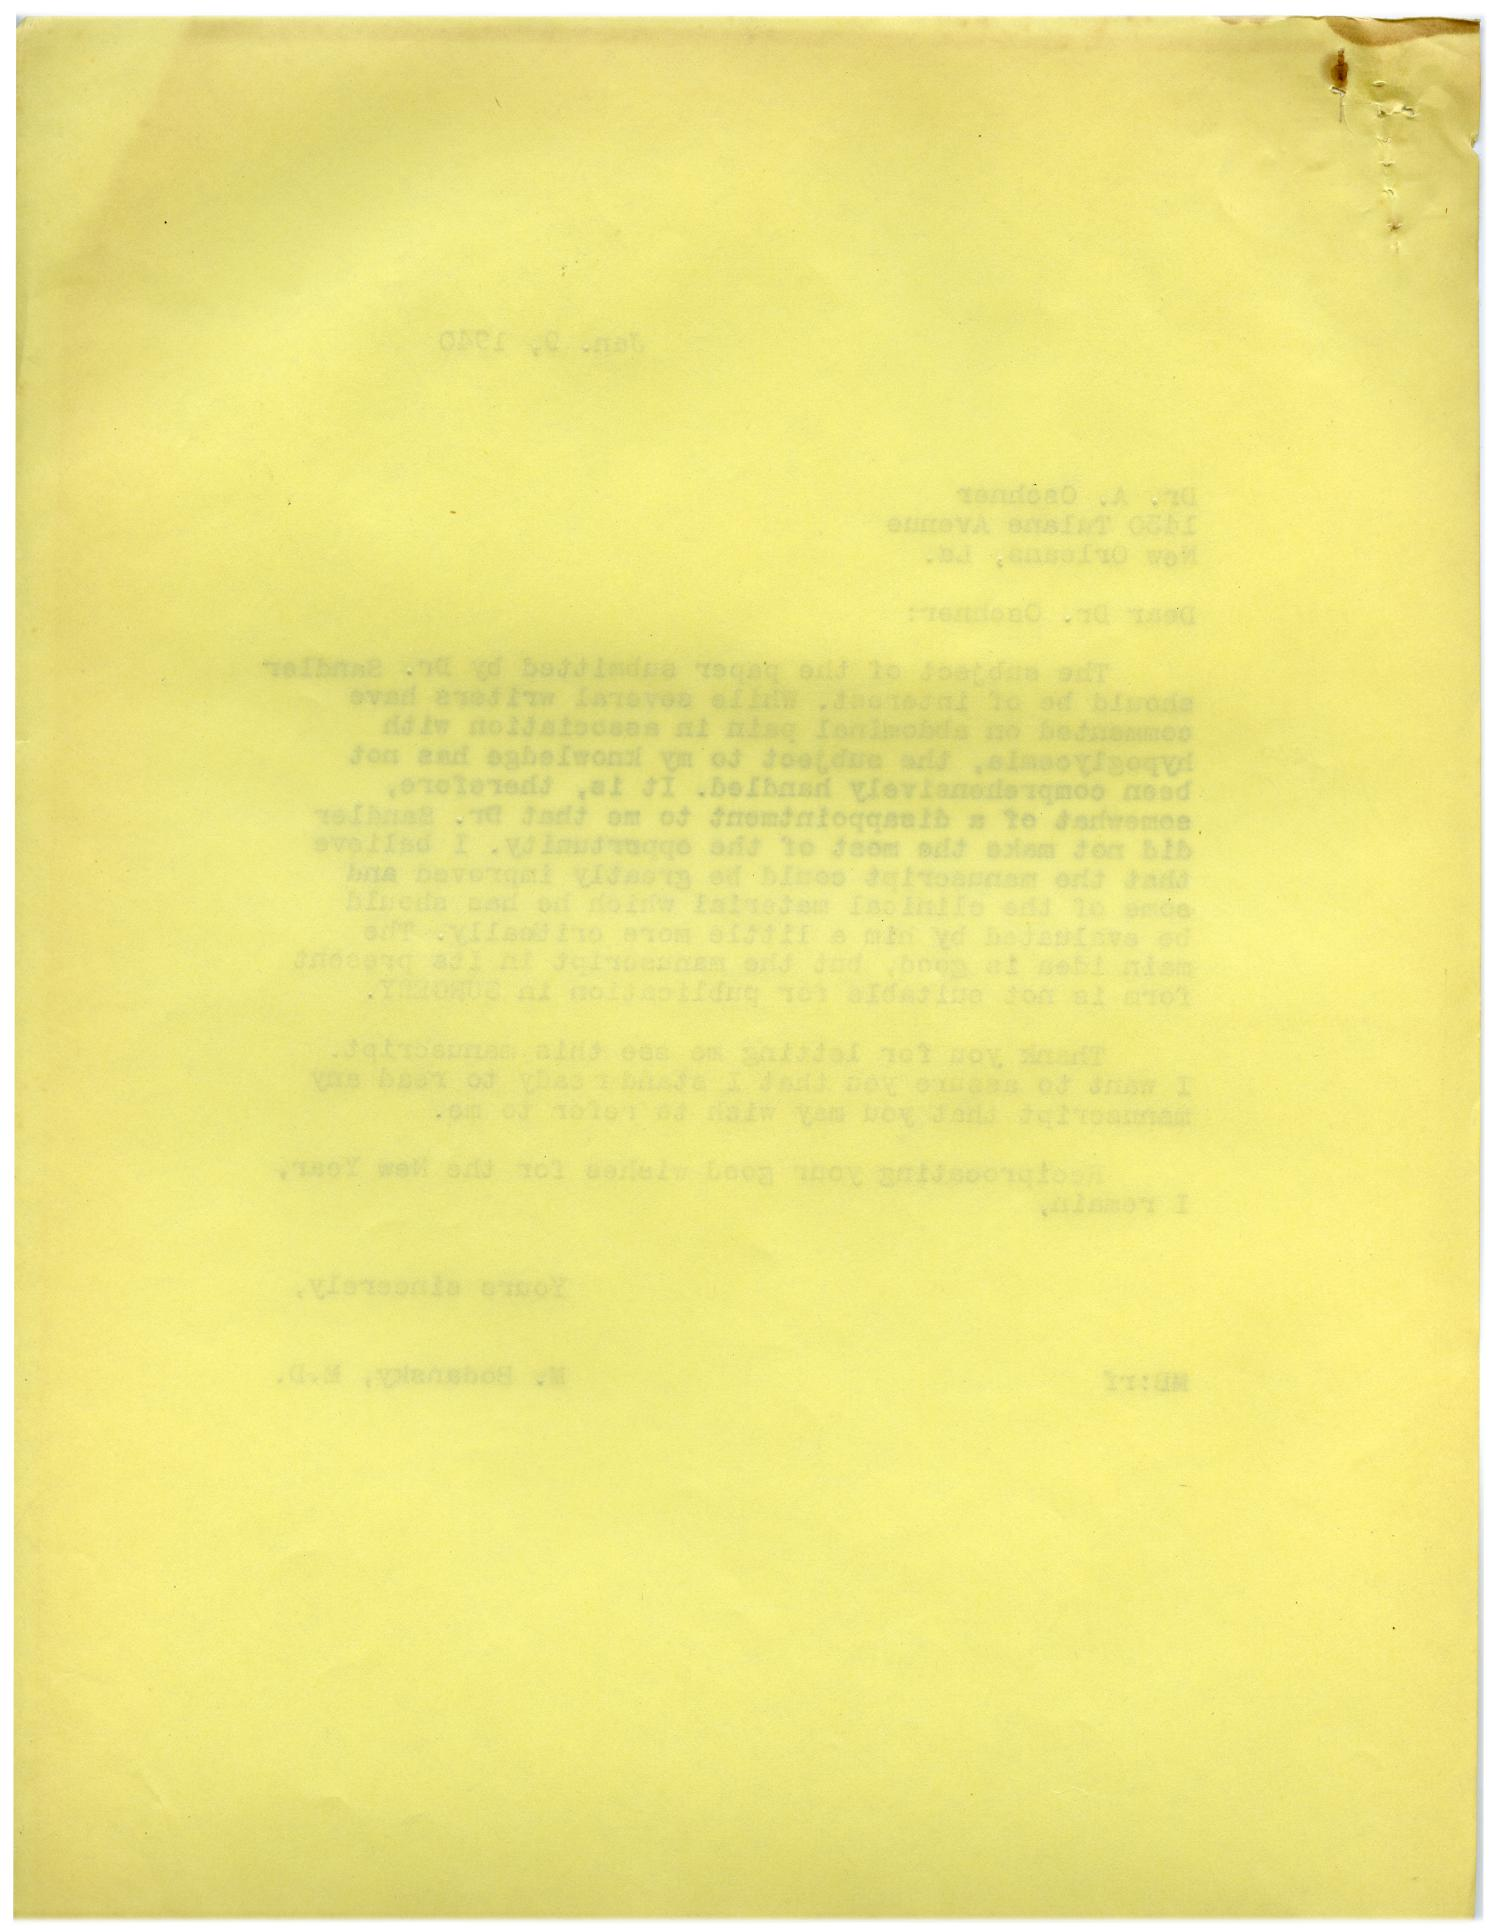 [Correspondence between Meyer Bodansky and A. Oschner - January 1940]                                                                                                      [Sequence #]: 2 of 4